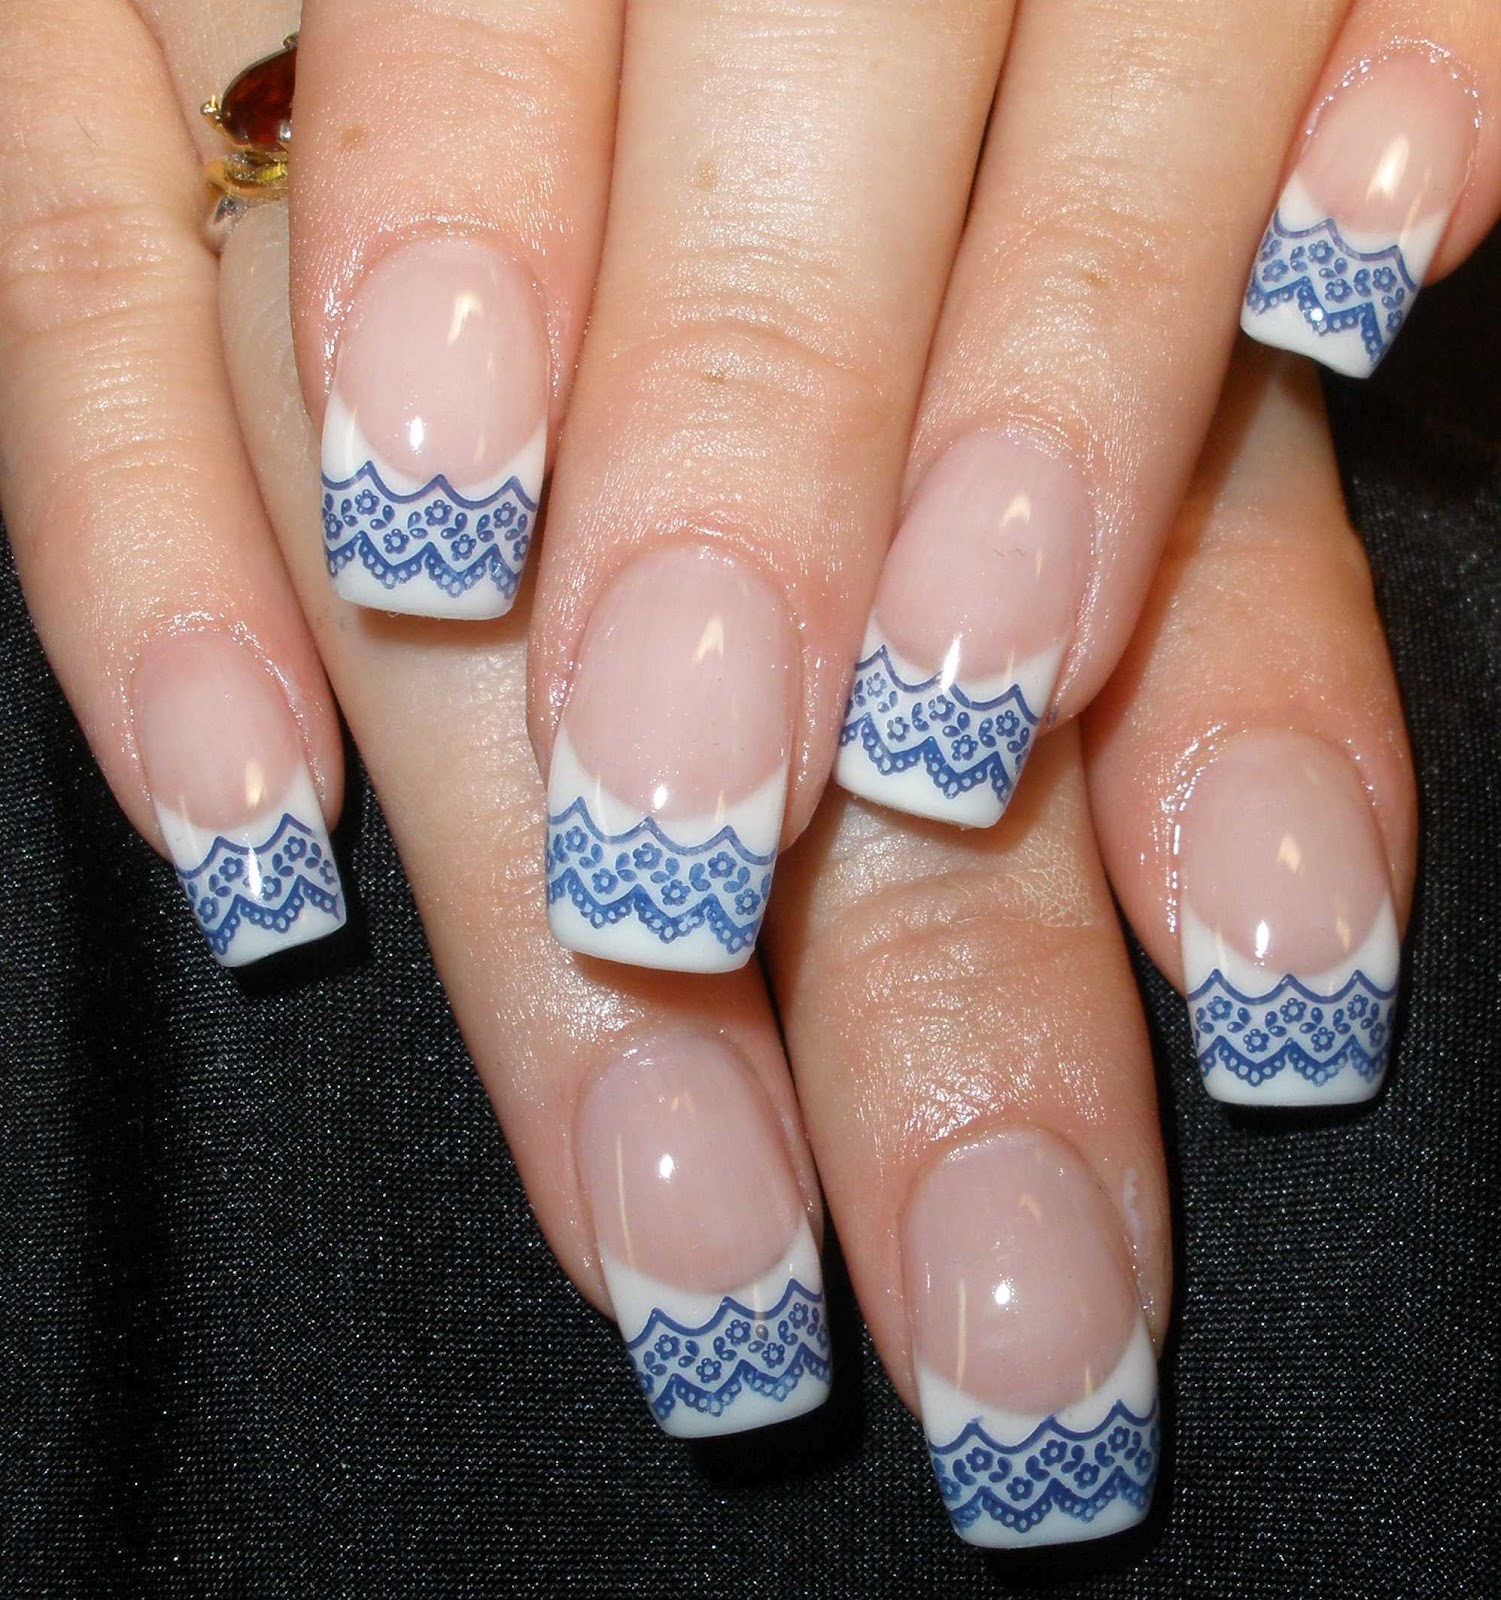 Classy nail designs pccala perfect and classy nail designs spending very little time and money prinsesfo Gallery